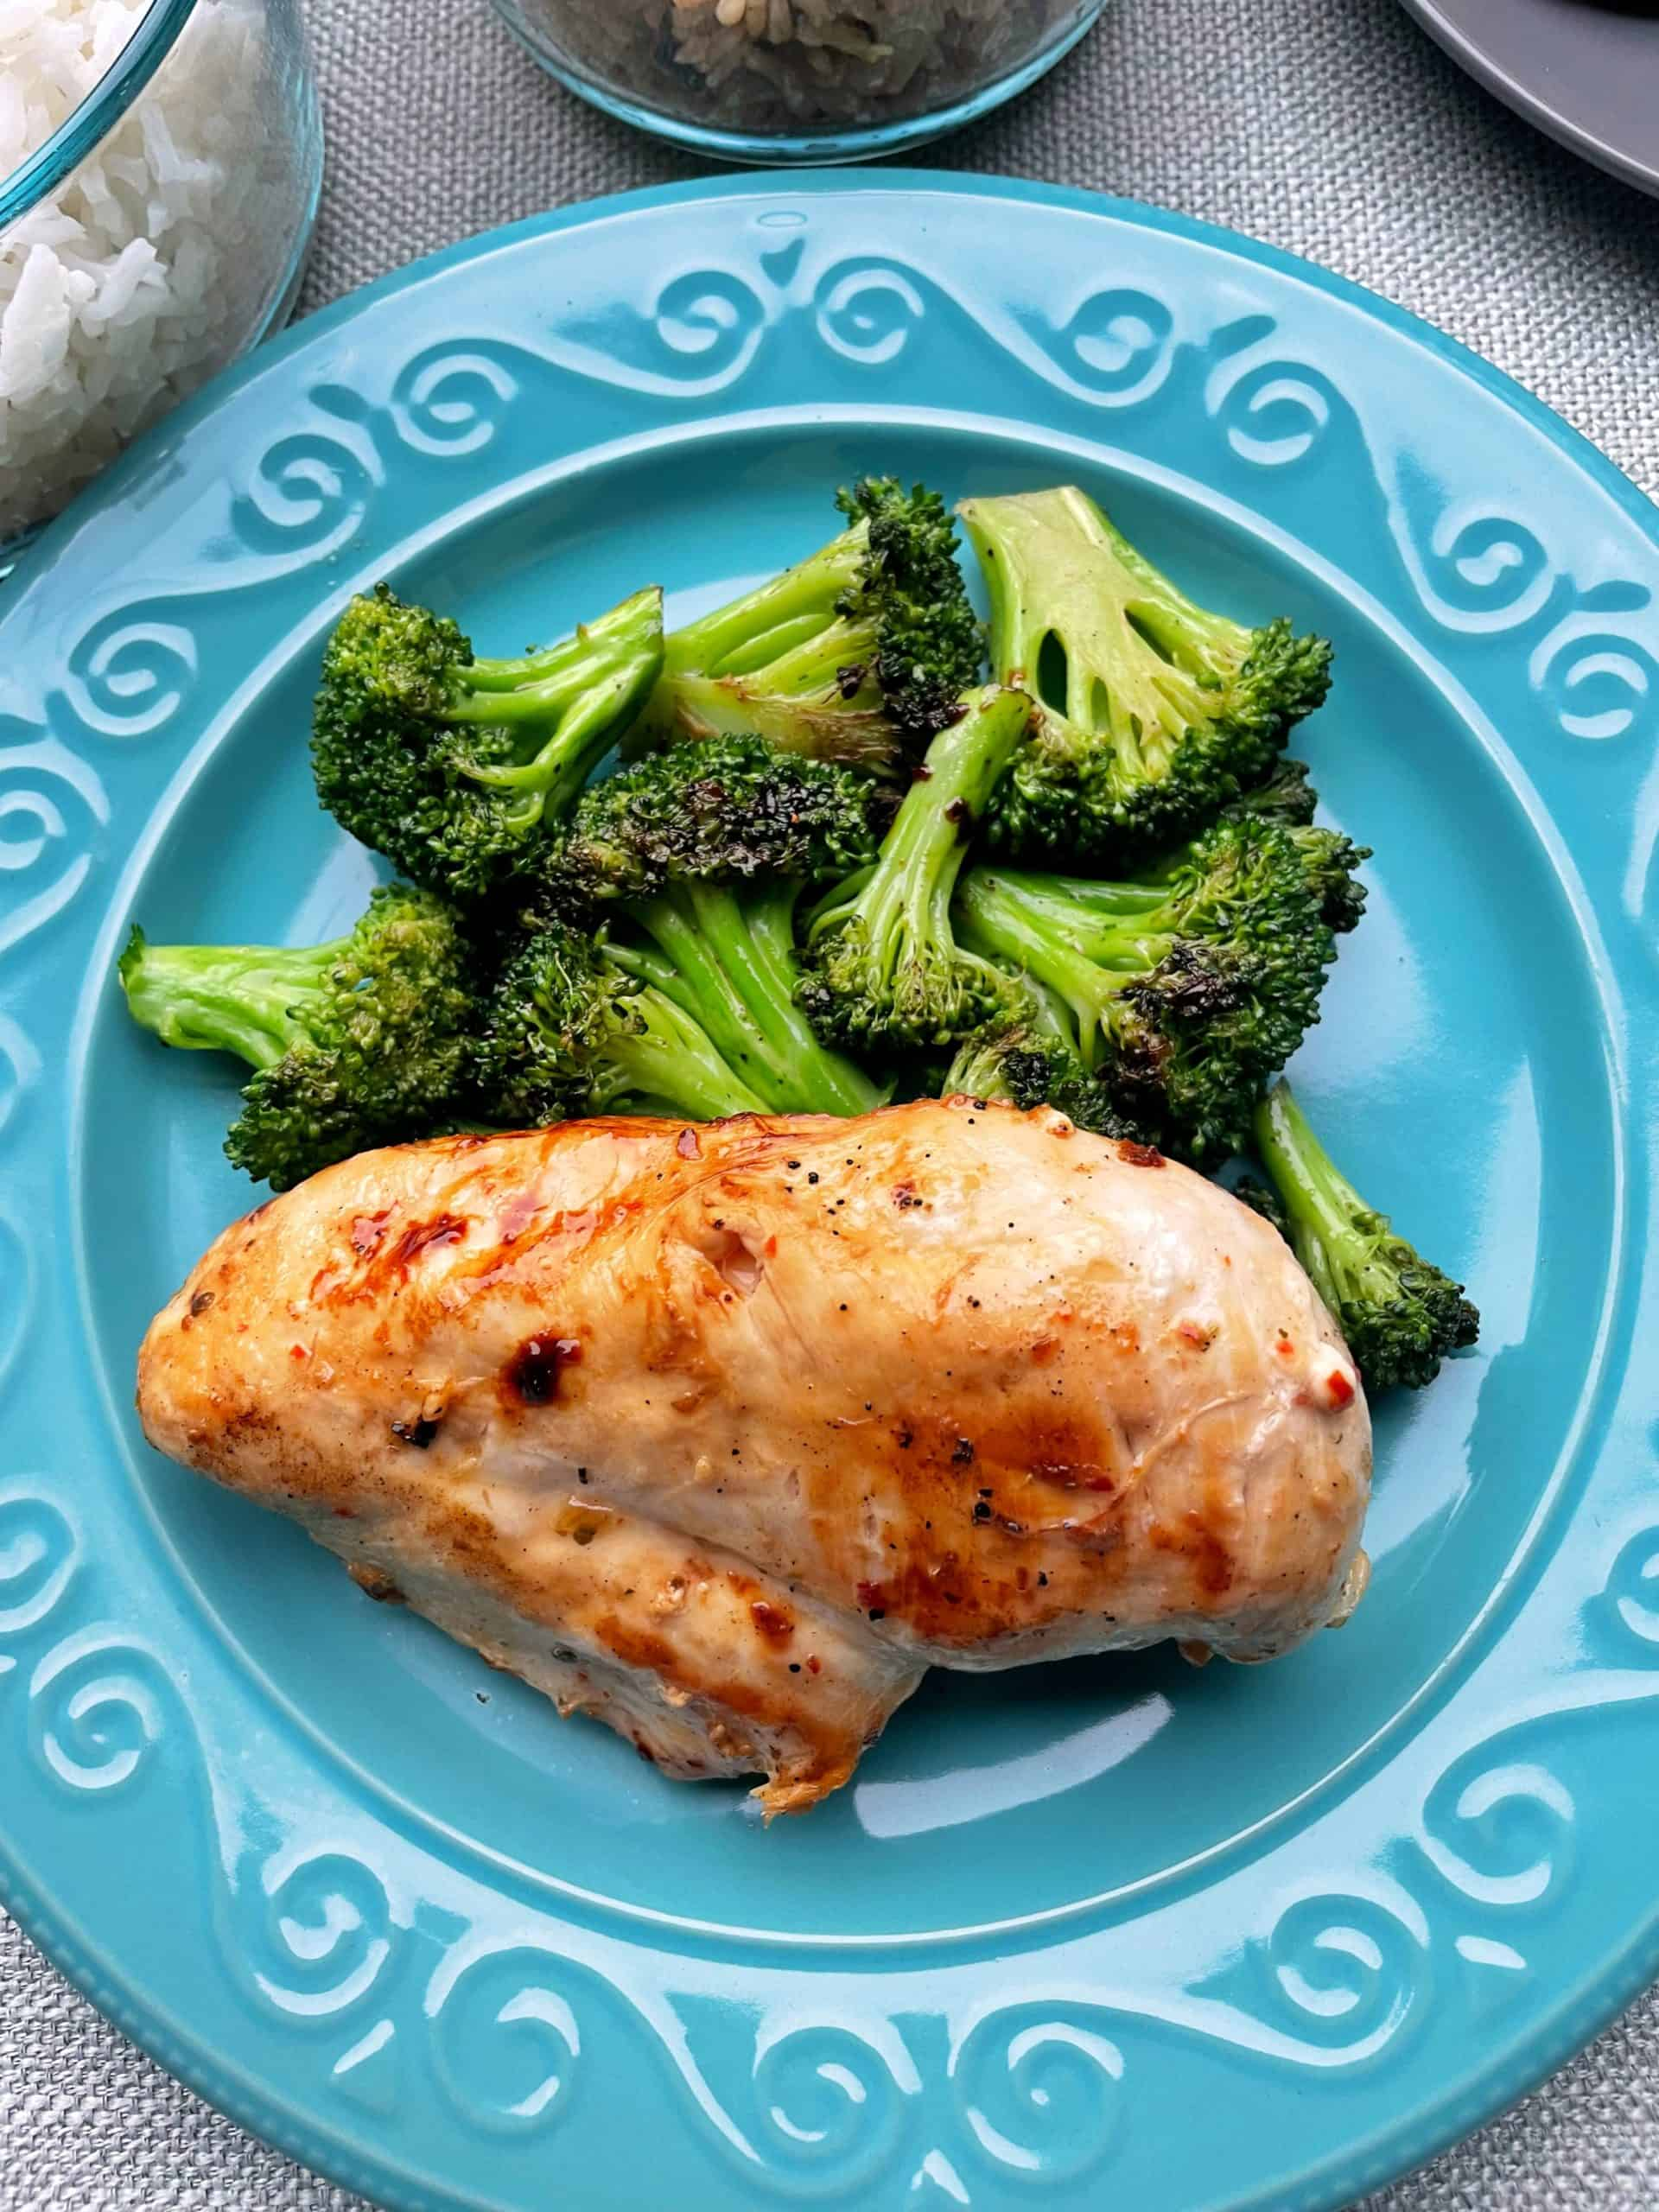 Best Marinated Chicken Recipe on  a plate with steamed Broccoli.